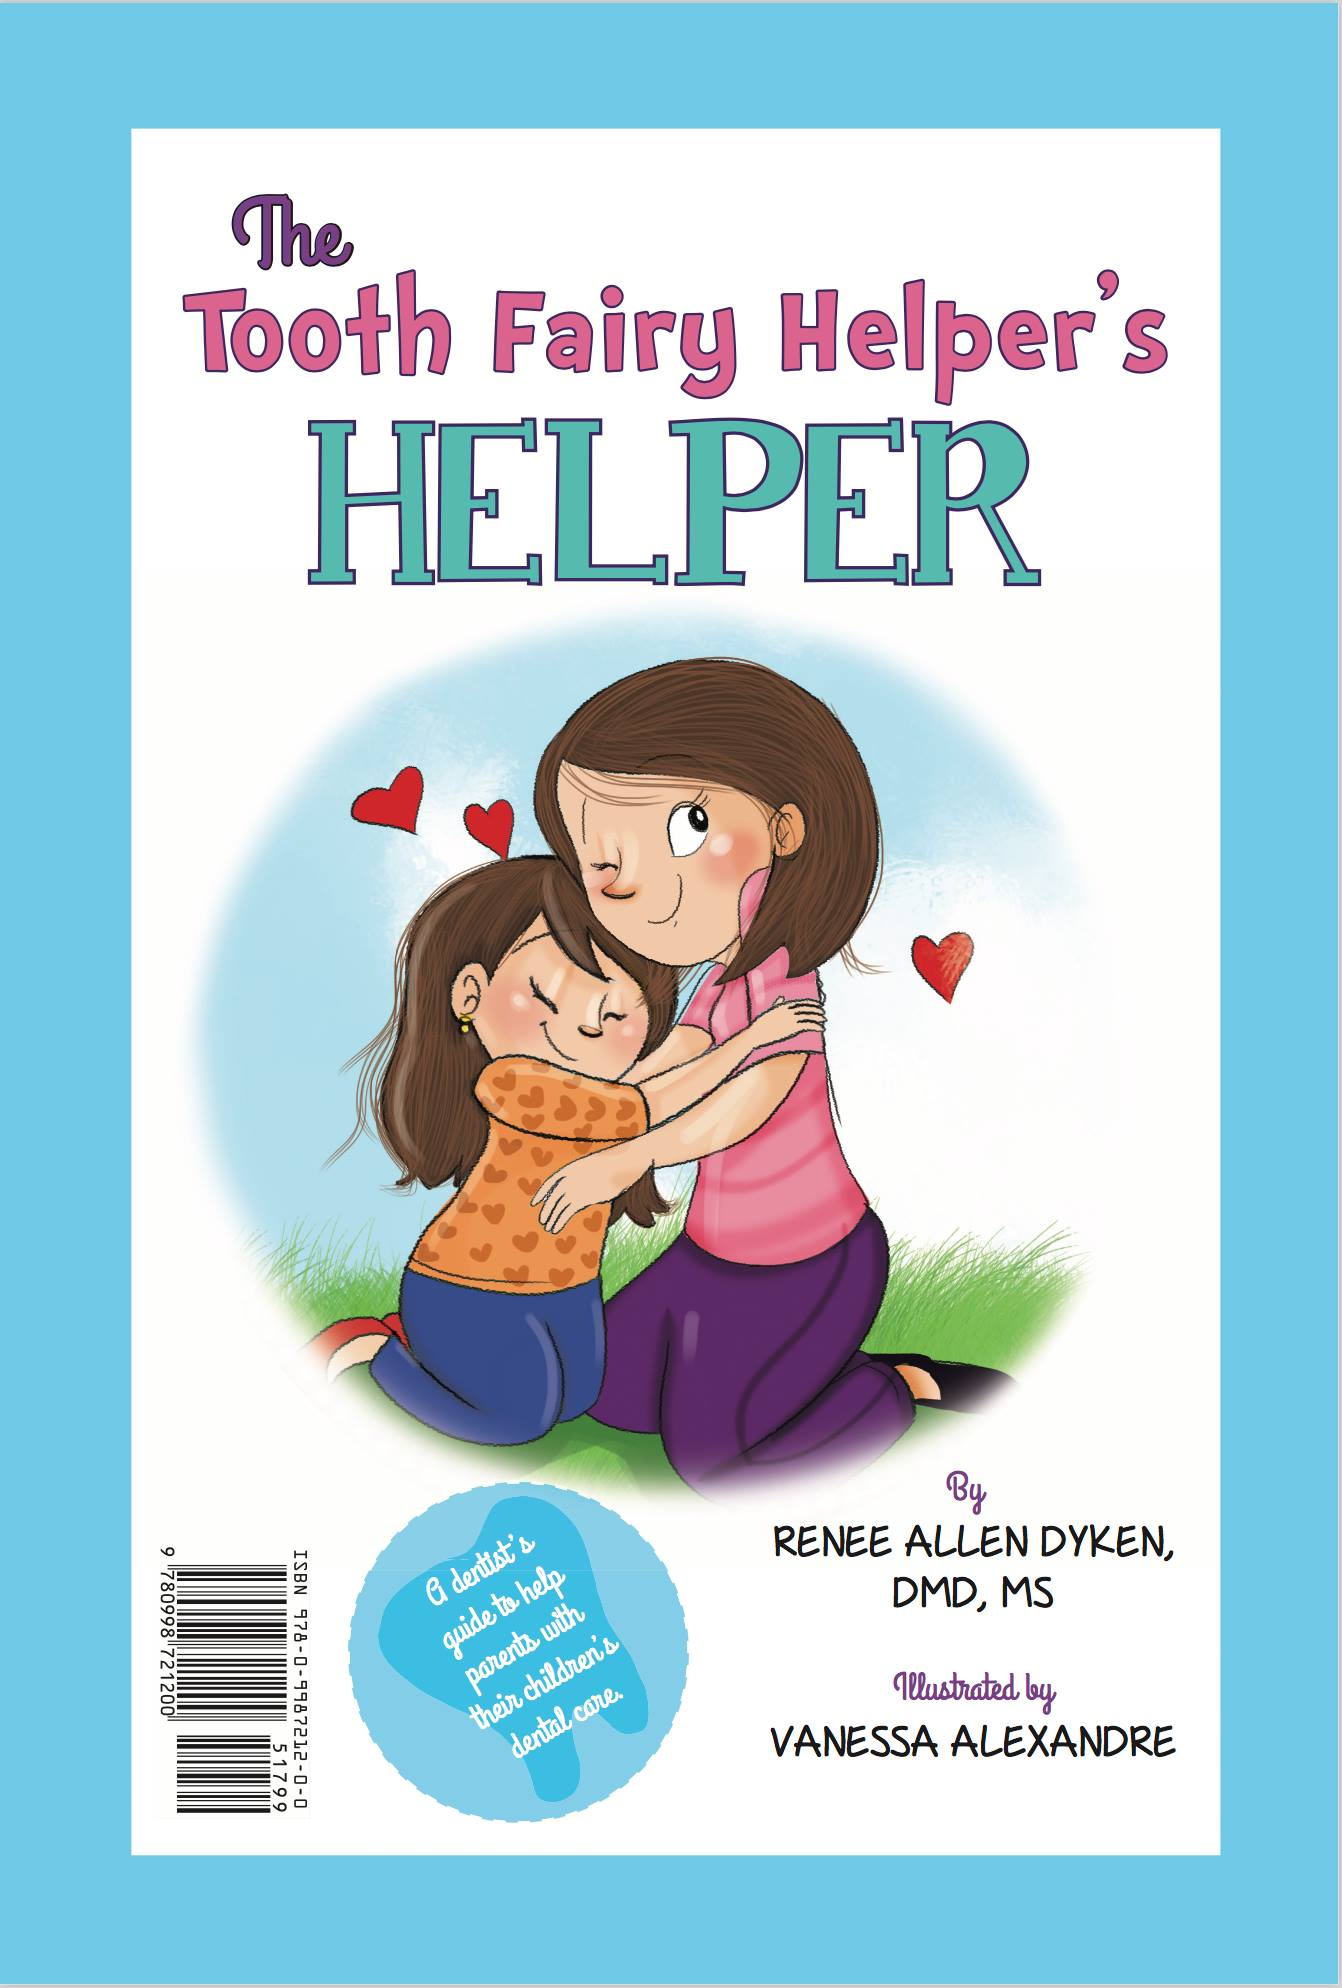 The tooth fairy helpers helper